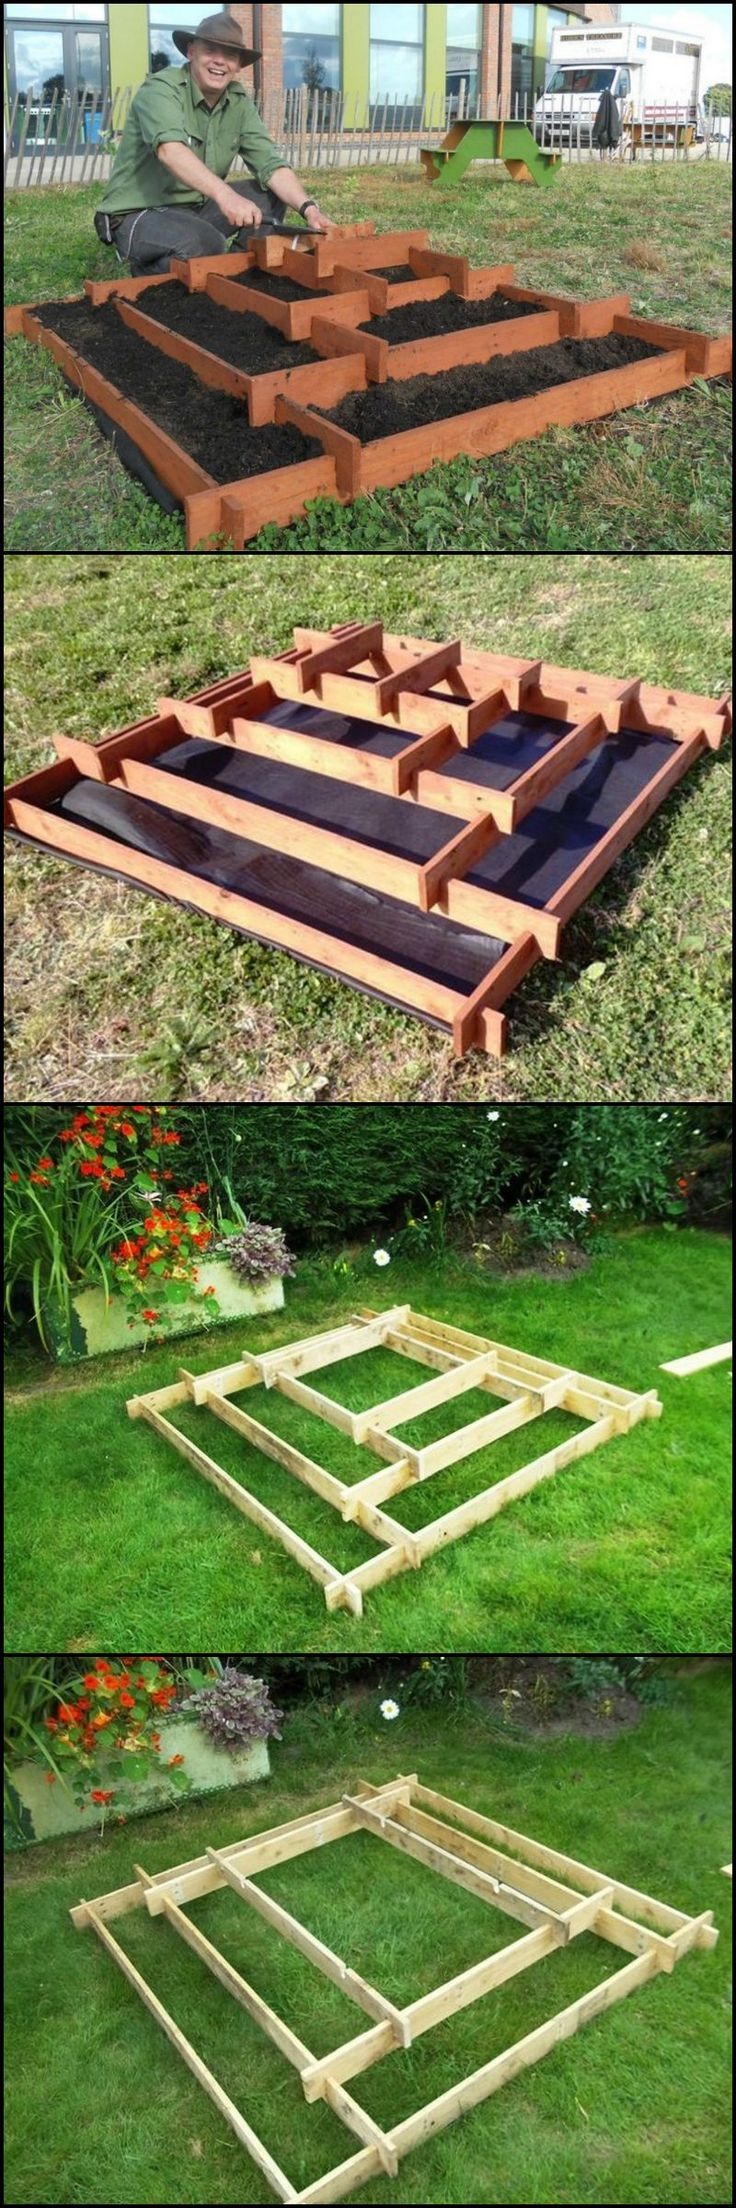 How To Make A Slot Together Pyramid Planter theownerbuilderne... Pyramid planters are great for growing various plants especially if you don't have a lot of space in your garden or yard. It's very easy and cheap to make as it's made from recycled pallet timbers. All you need is an hour and a half and some basic woodworking skills.